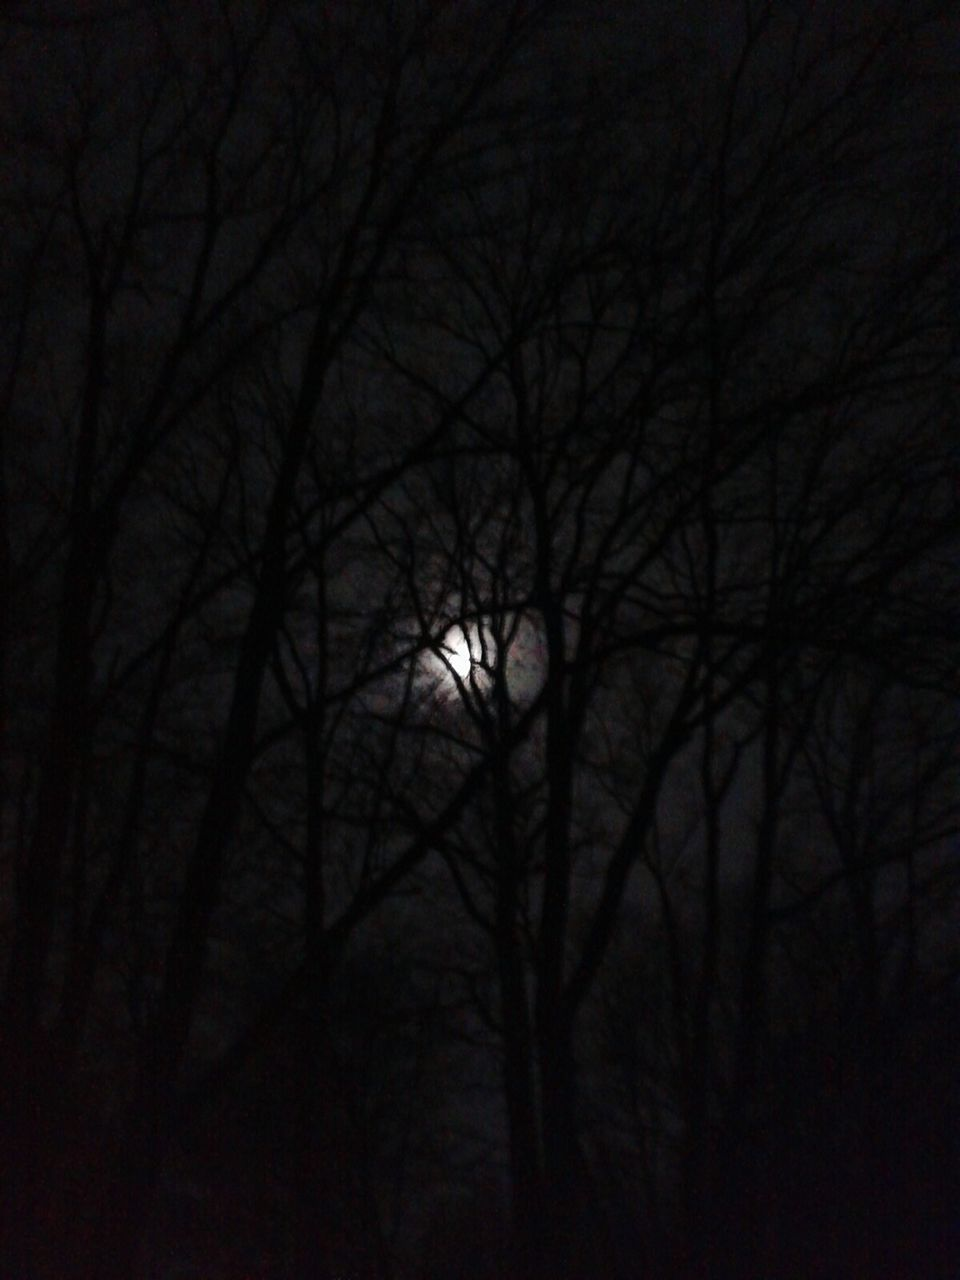 bare tree, night, tranquility, nature, moon, branch, beauty in nature, tranquil scene, tree, scenics, outdoors, astronomy, no people, solar eclipse, sky